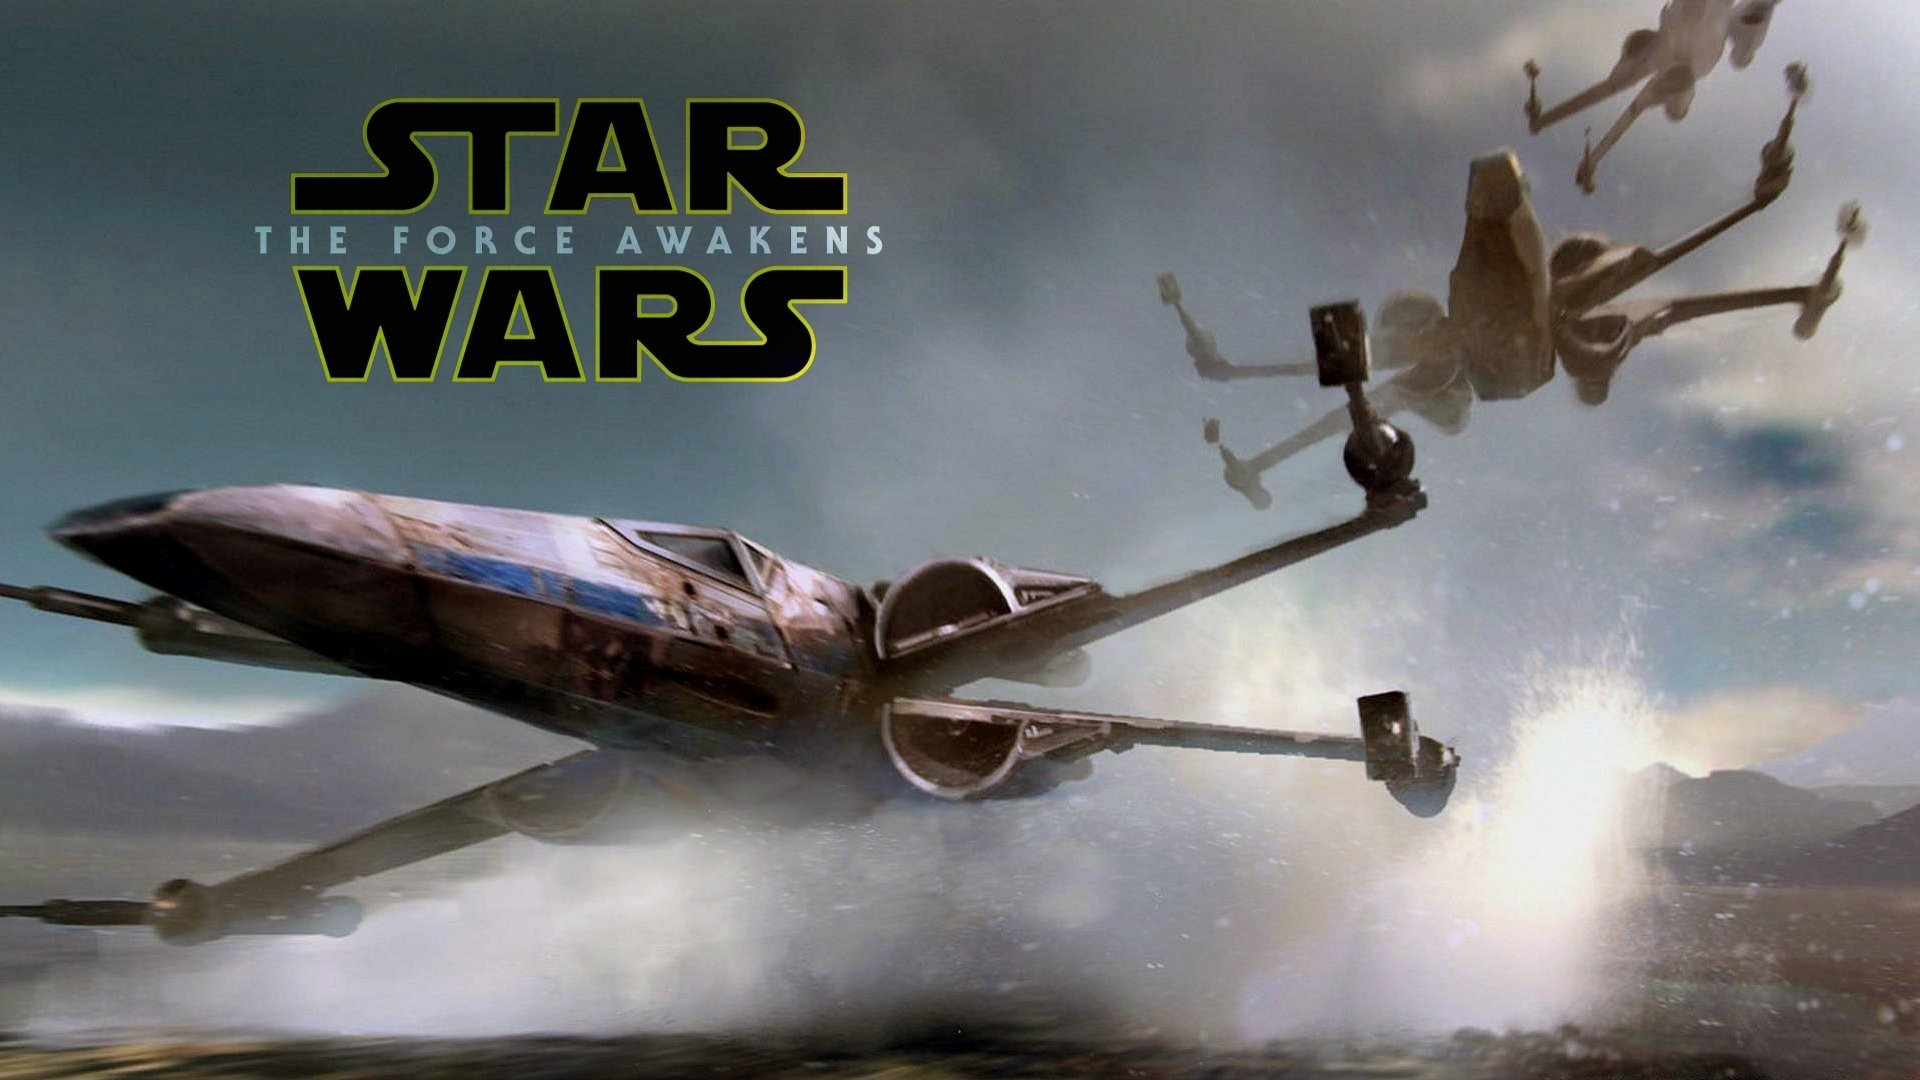 Millions-of-fans-cried-out-in-joy-after-they-saw-the-latest-trailer-for-Star-Wars-The-Force-Awakens-wallpaper-wp3408639